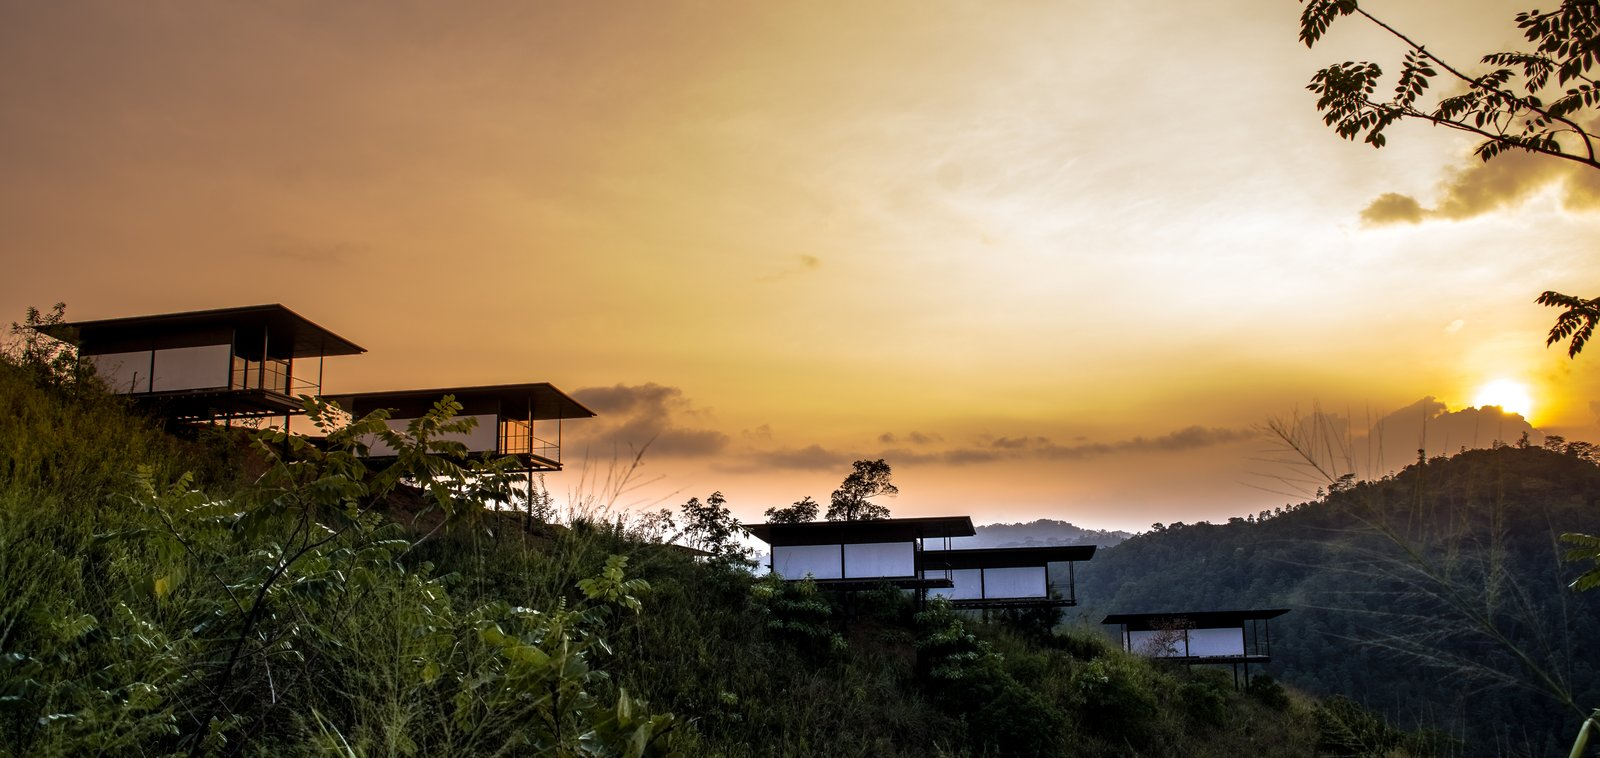 Individual rooms perched on stilts overlooking the valley  Santani Wellness Resort and Spa